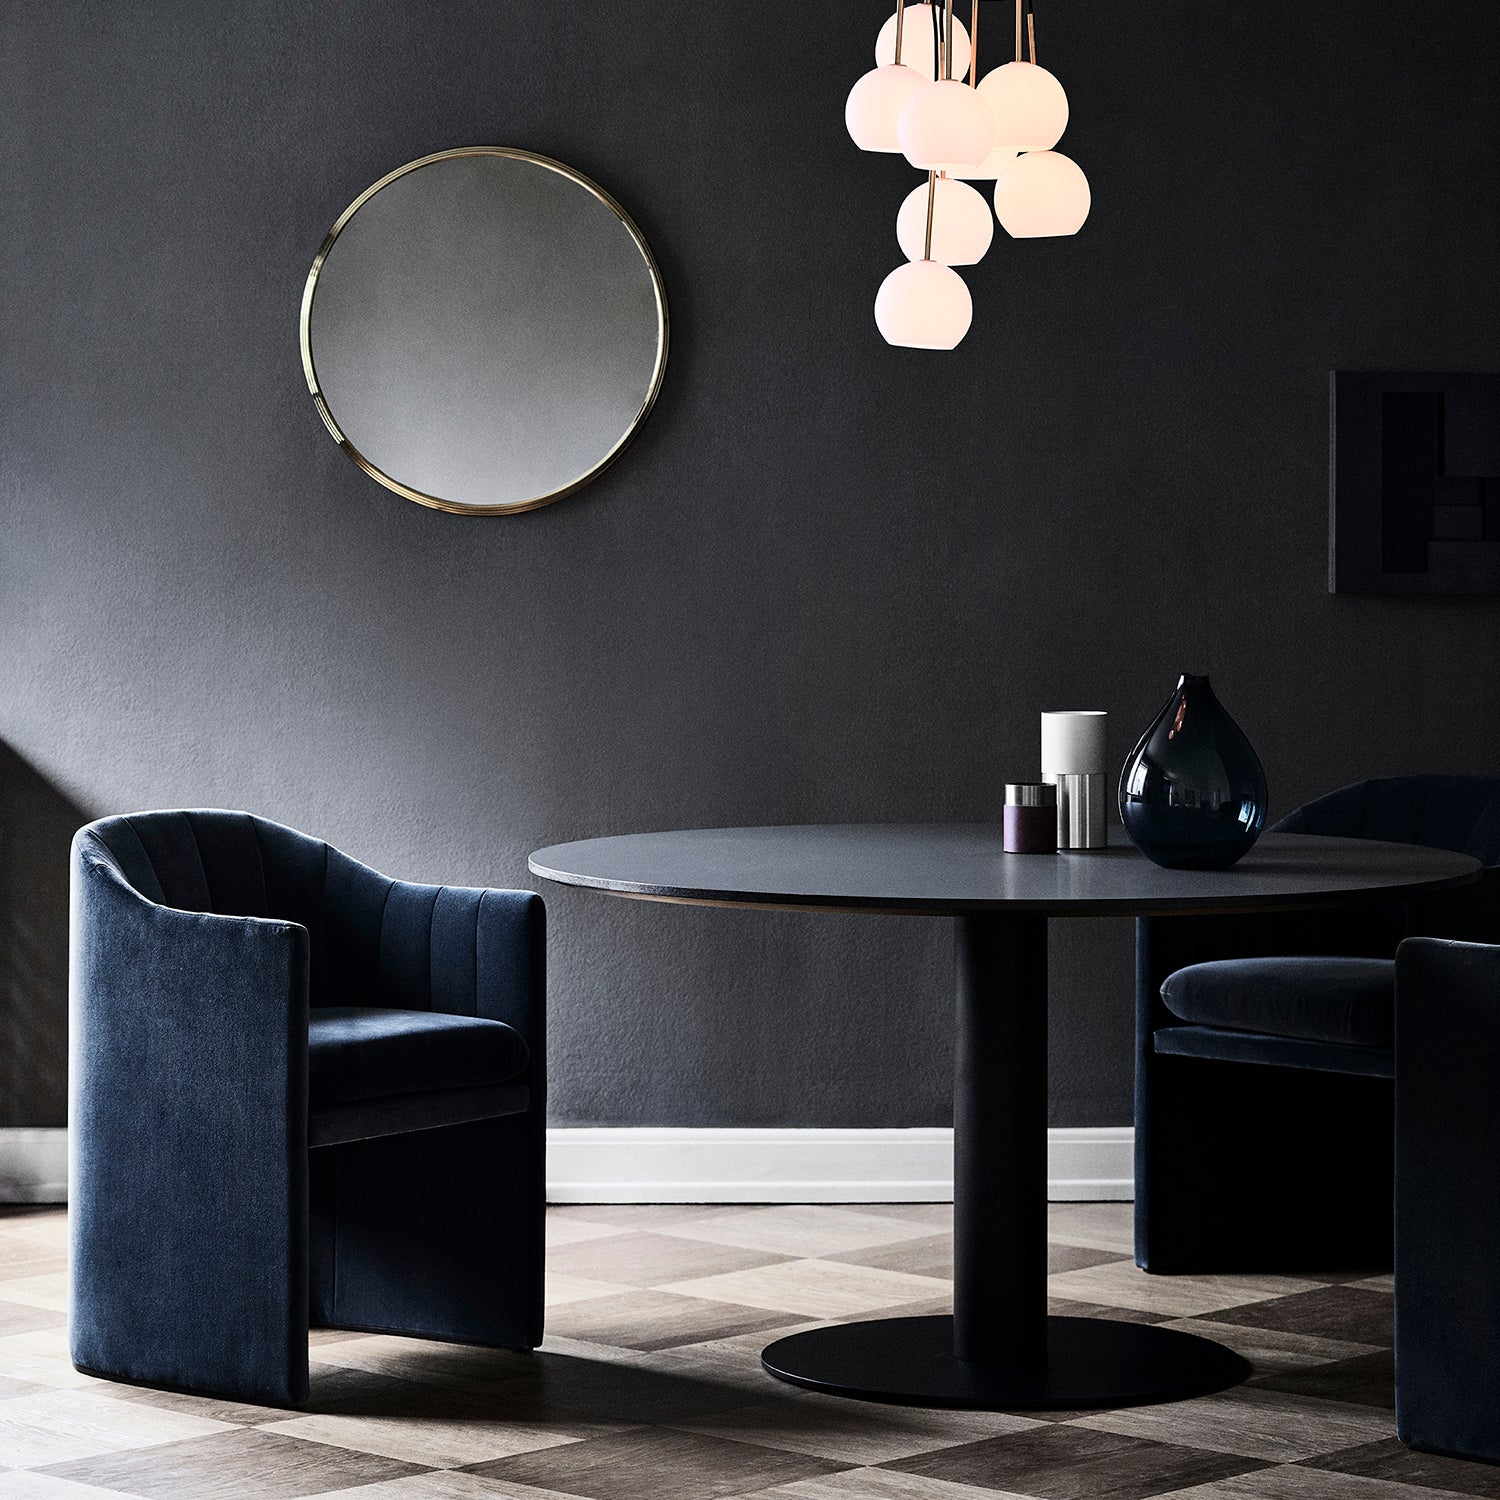 In Between Center Base Dining Table SK11 + SK12